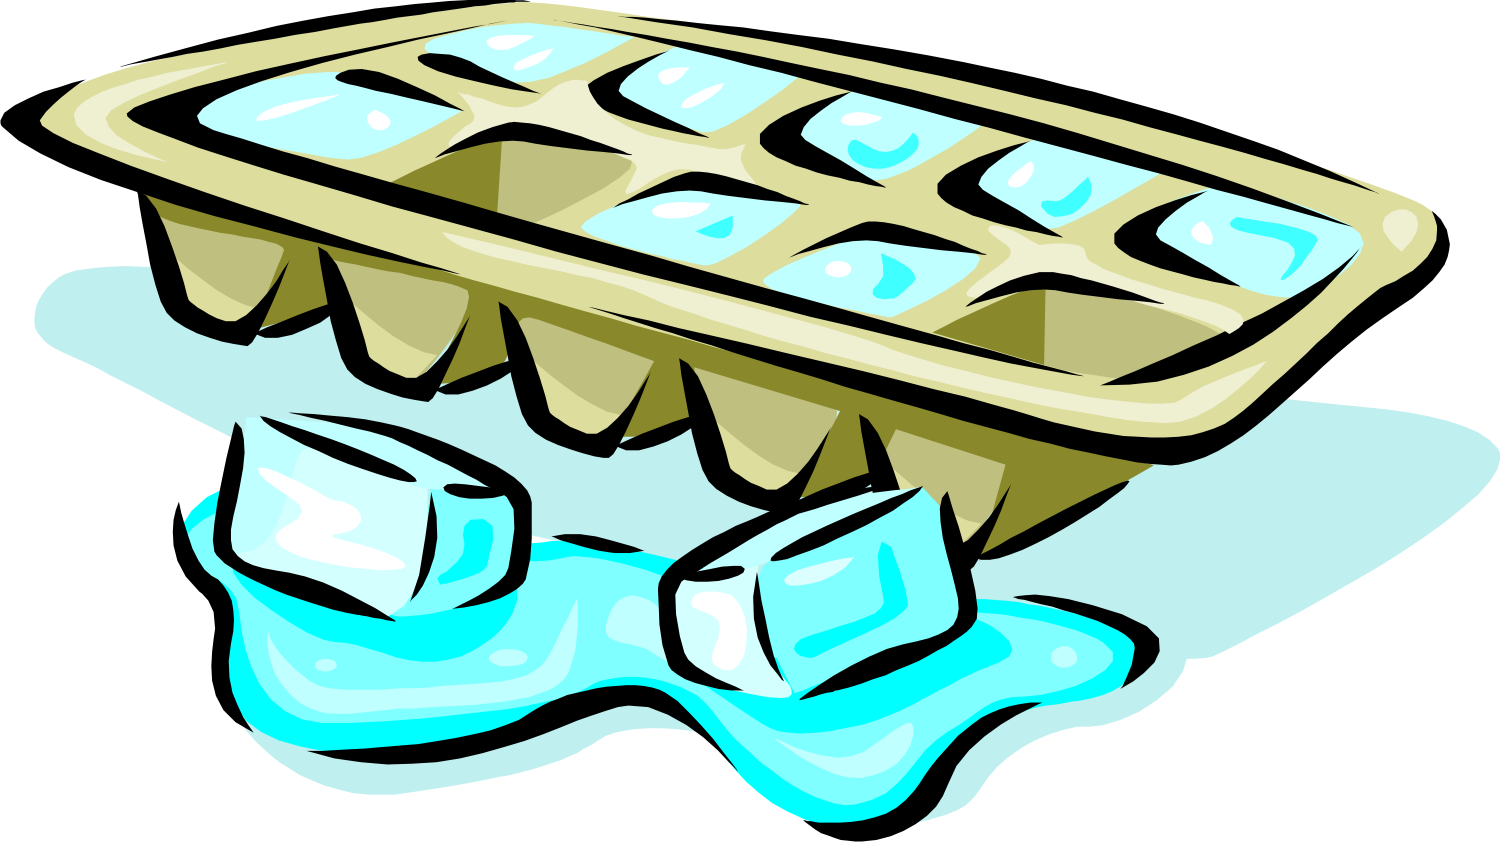 Ice Cube Clipart drawing free image.